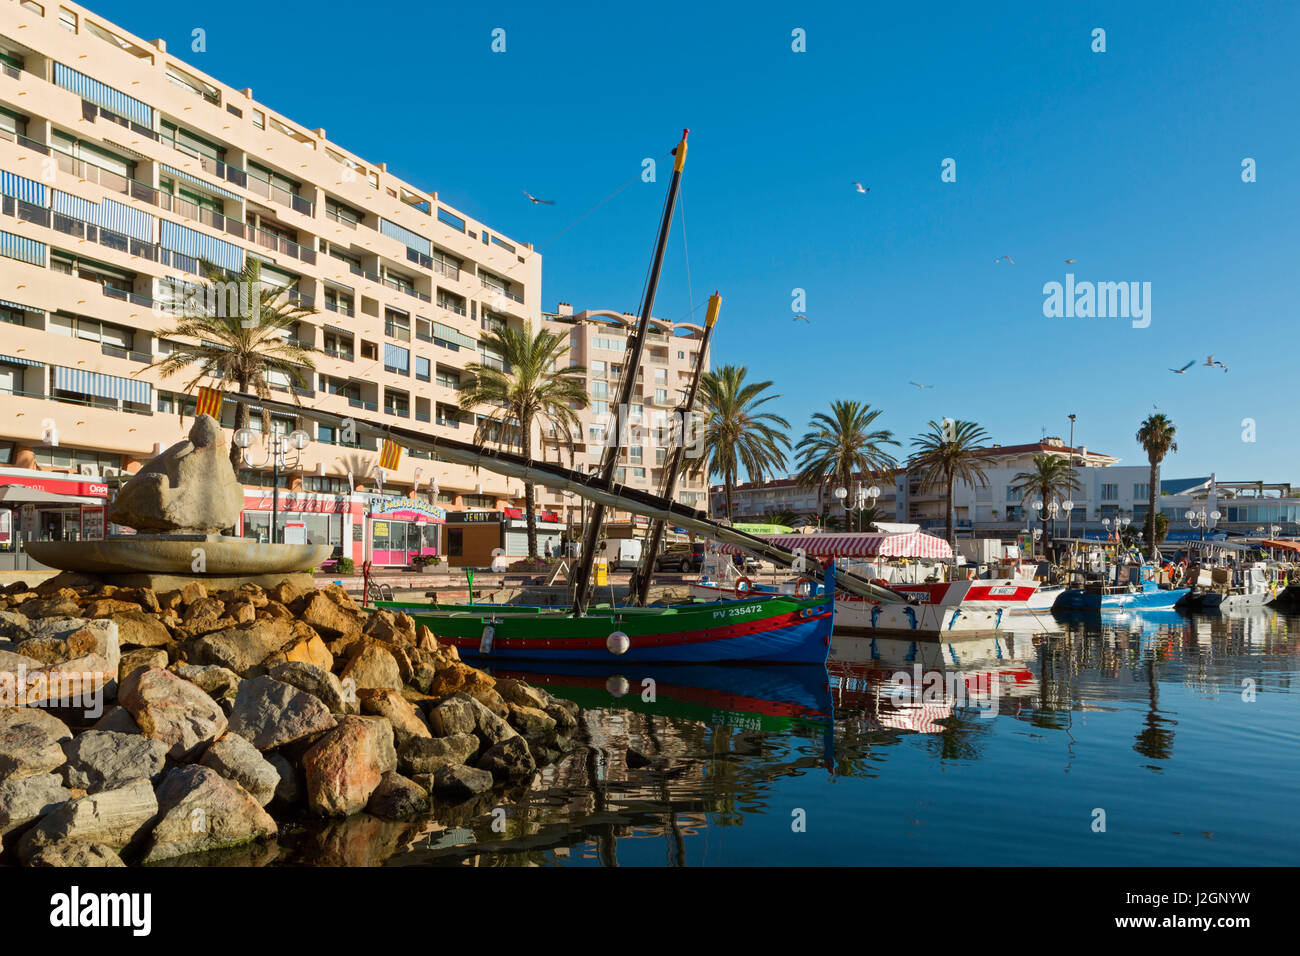 The fishing harbour at Saint Cyprien and the fountain dated 1991 by Yasmine Hurbourg, Jean Pelletier, Charles Cervantes - Stock Image